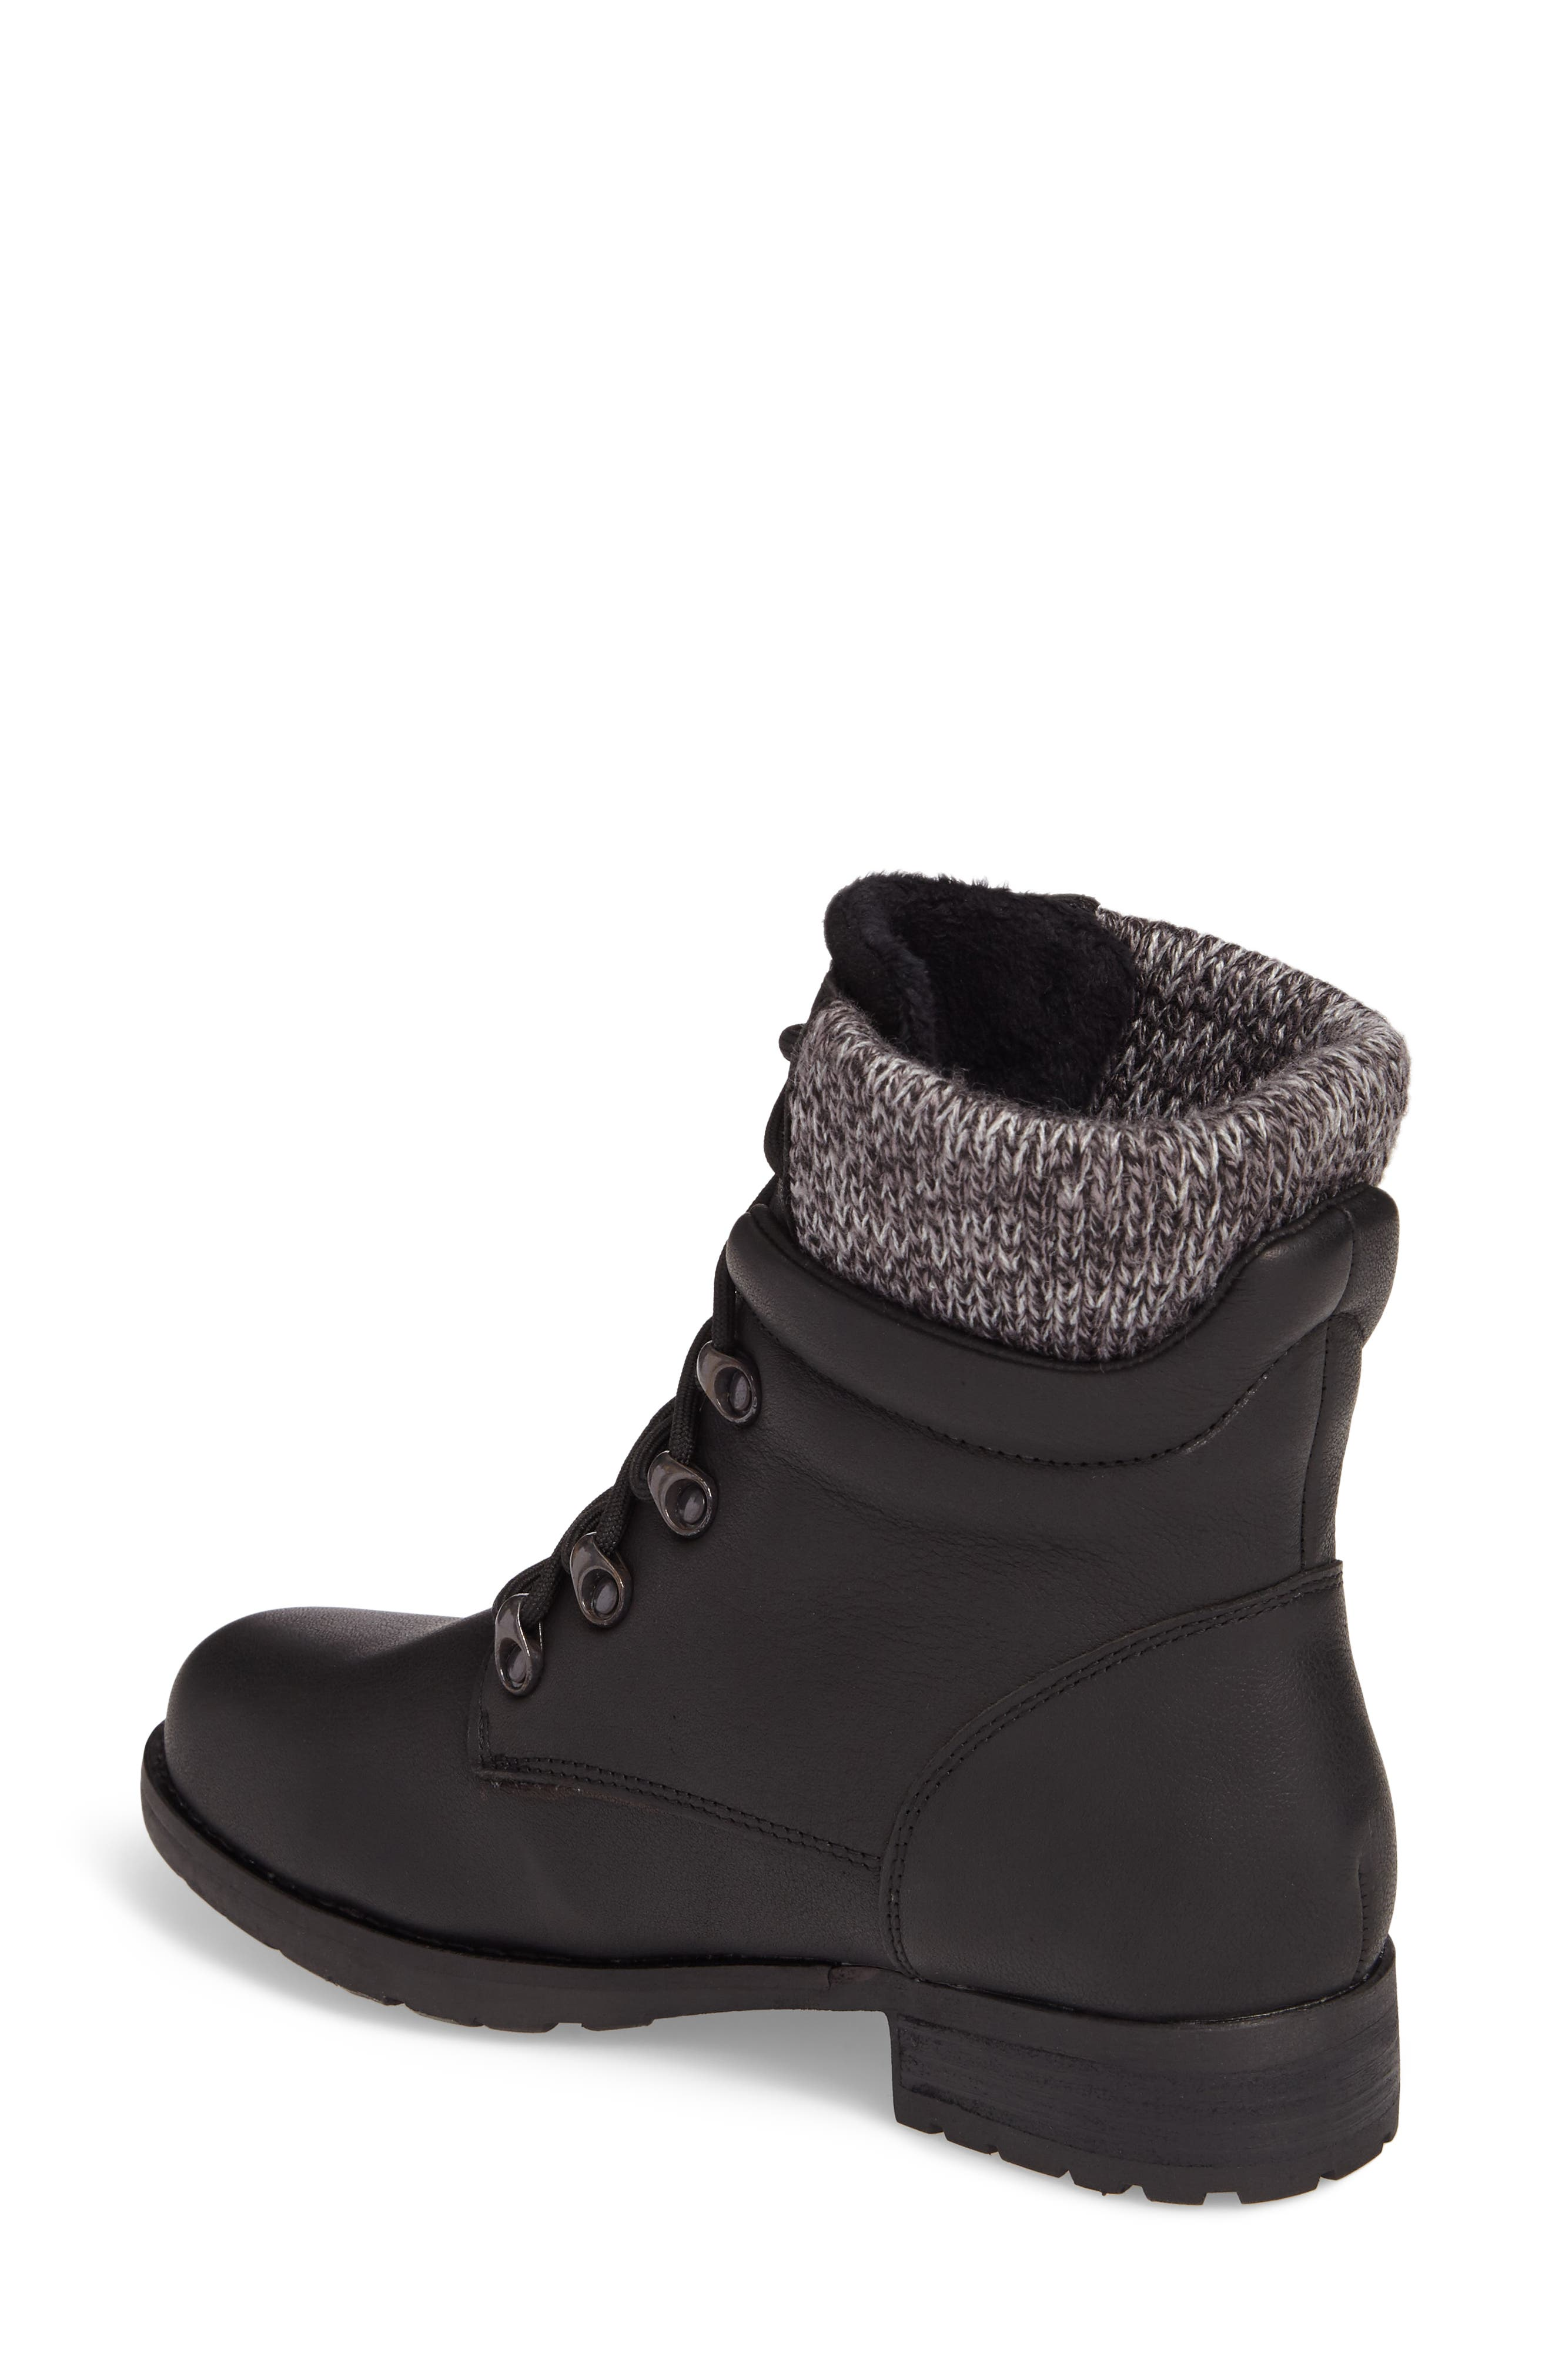 Derry Waterproof Boot,                             Alternate thumbnail 2, color,                             BLACK LEATHER